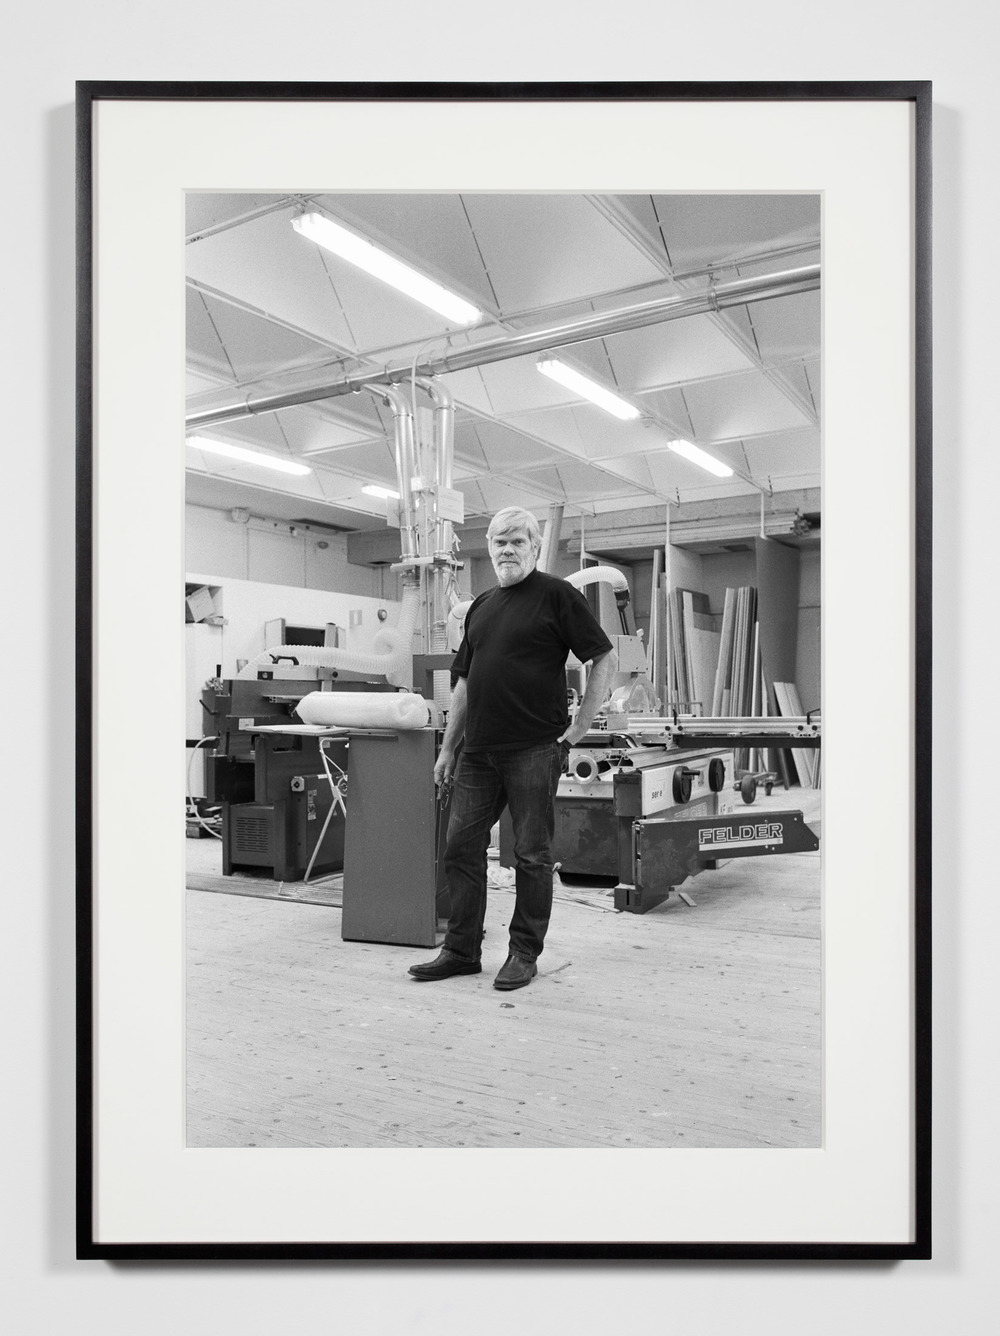 Kunsthalle Chief Technician, Malmö, Sweden, October 16, 2010    2011   Epson Ultrachrome K3 archival ink jet print on Hahnemühle Photo Rag paper  36 3/8 x 26 3/8 inches   Industrial Portraits, 2008–